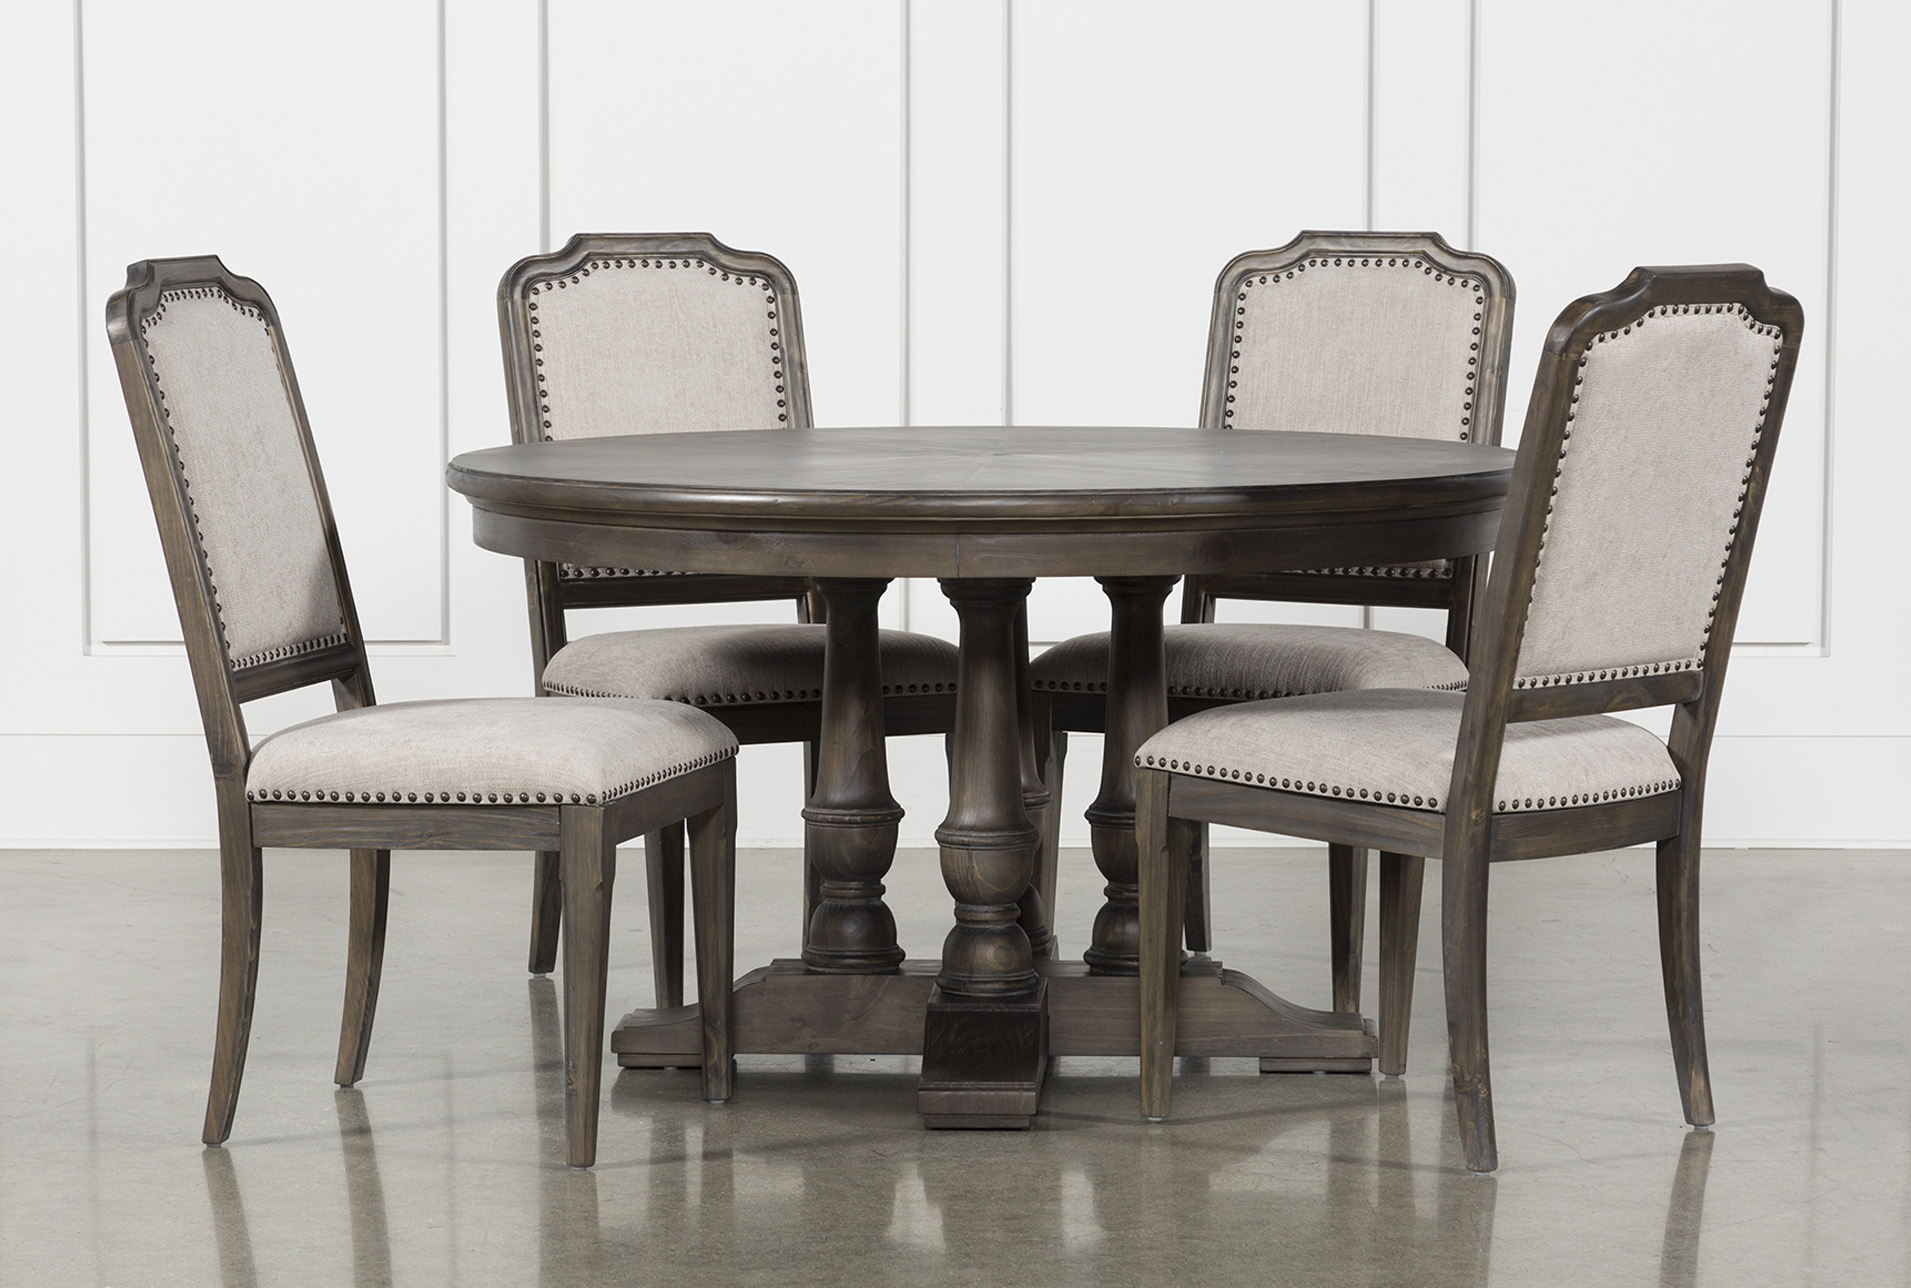 Dining Room Upholstered Chairs Laurent 5 Piece Round Dining Set With Upholstered Chairs